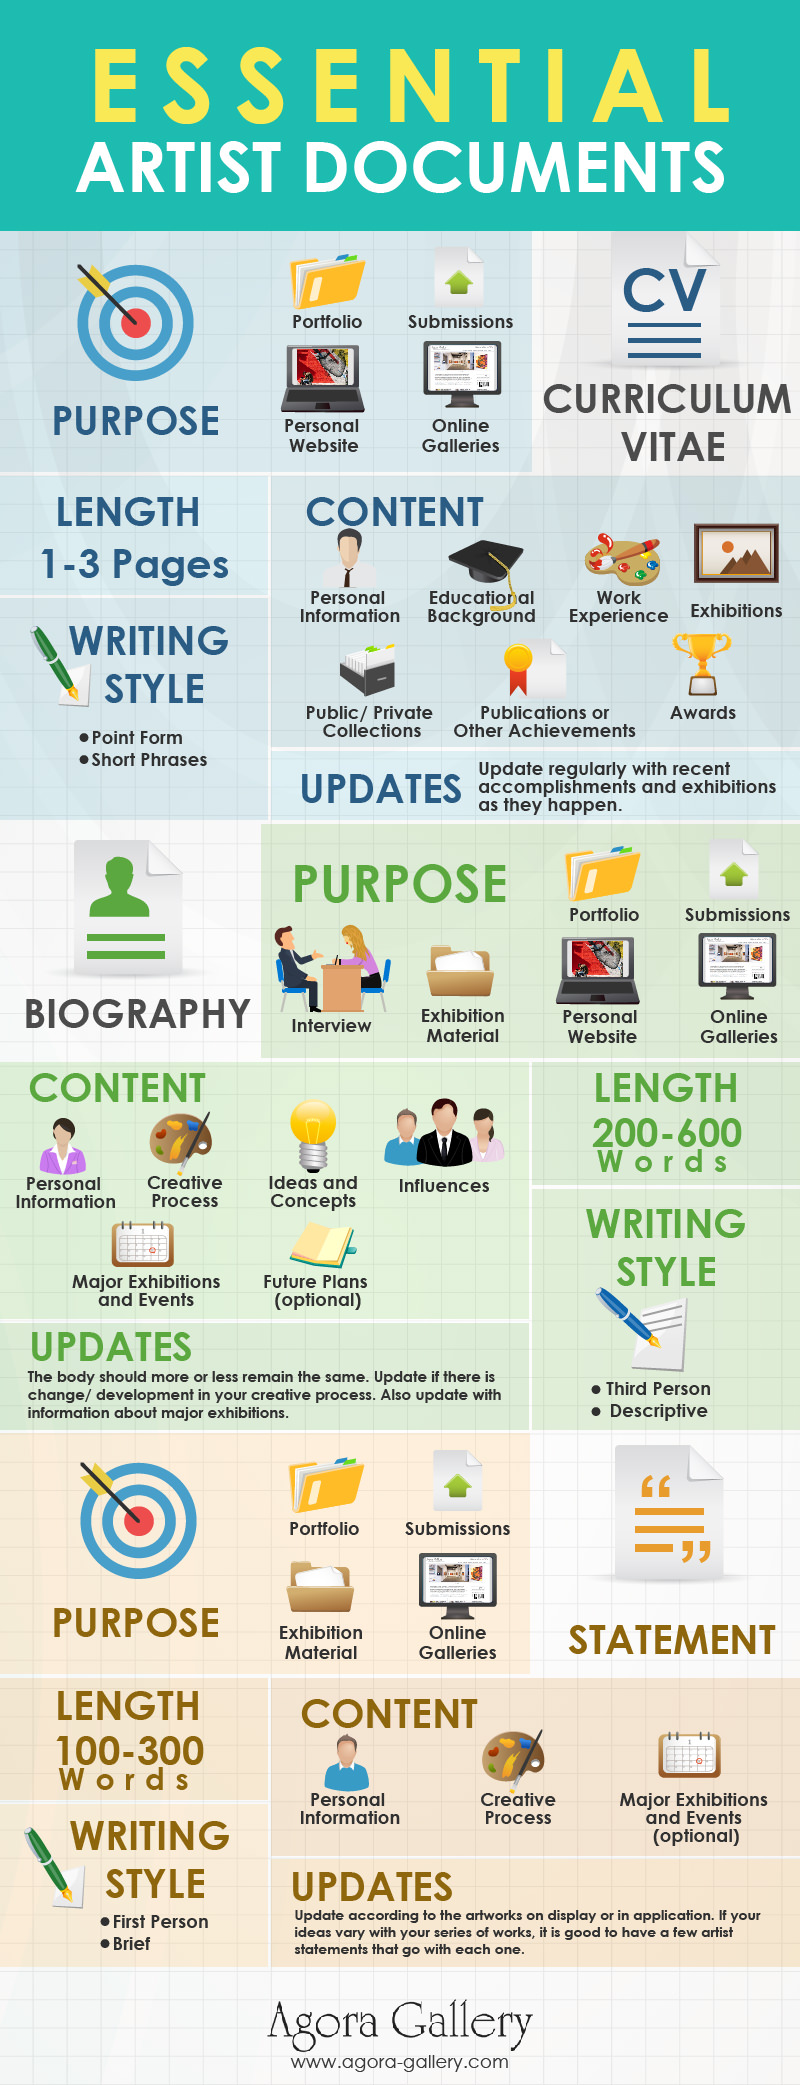 English Learning Essay  Compare Contrast Essay Examples High School also Thesis Examples For Essays Writing An Artist Biography  Agora Gallery  Advice Blog From Thesis To Essay Writing